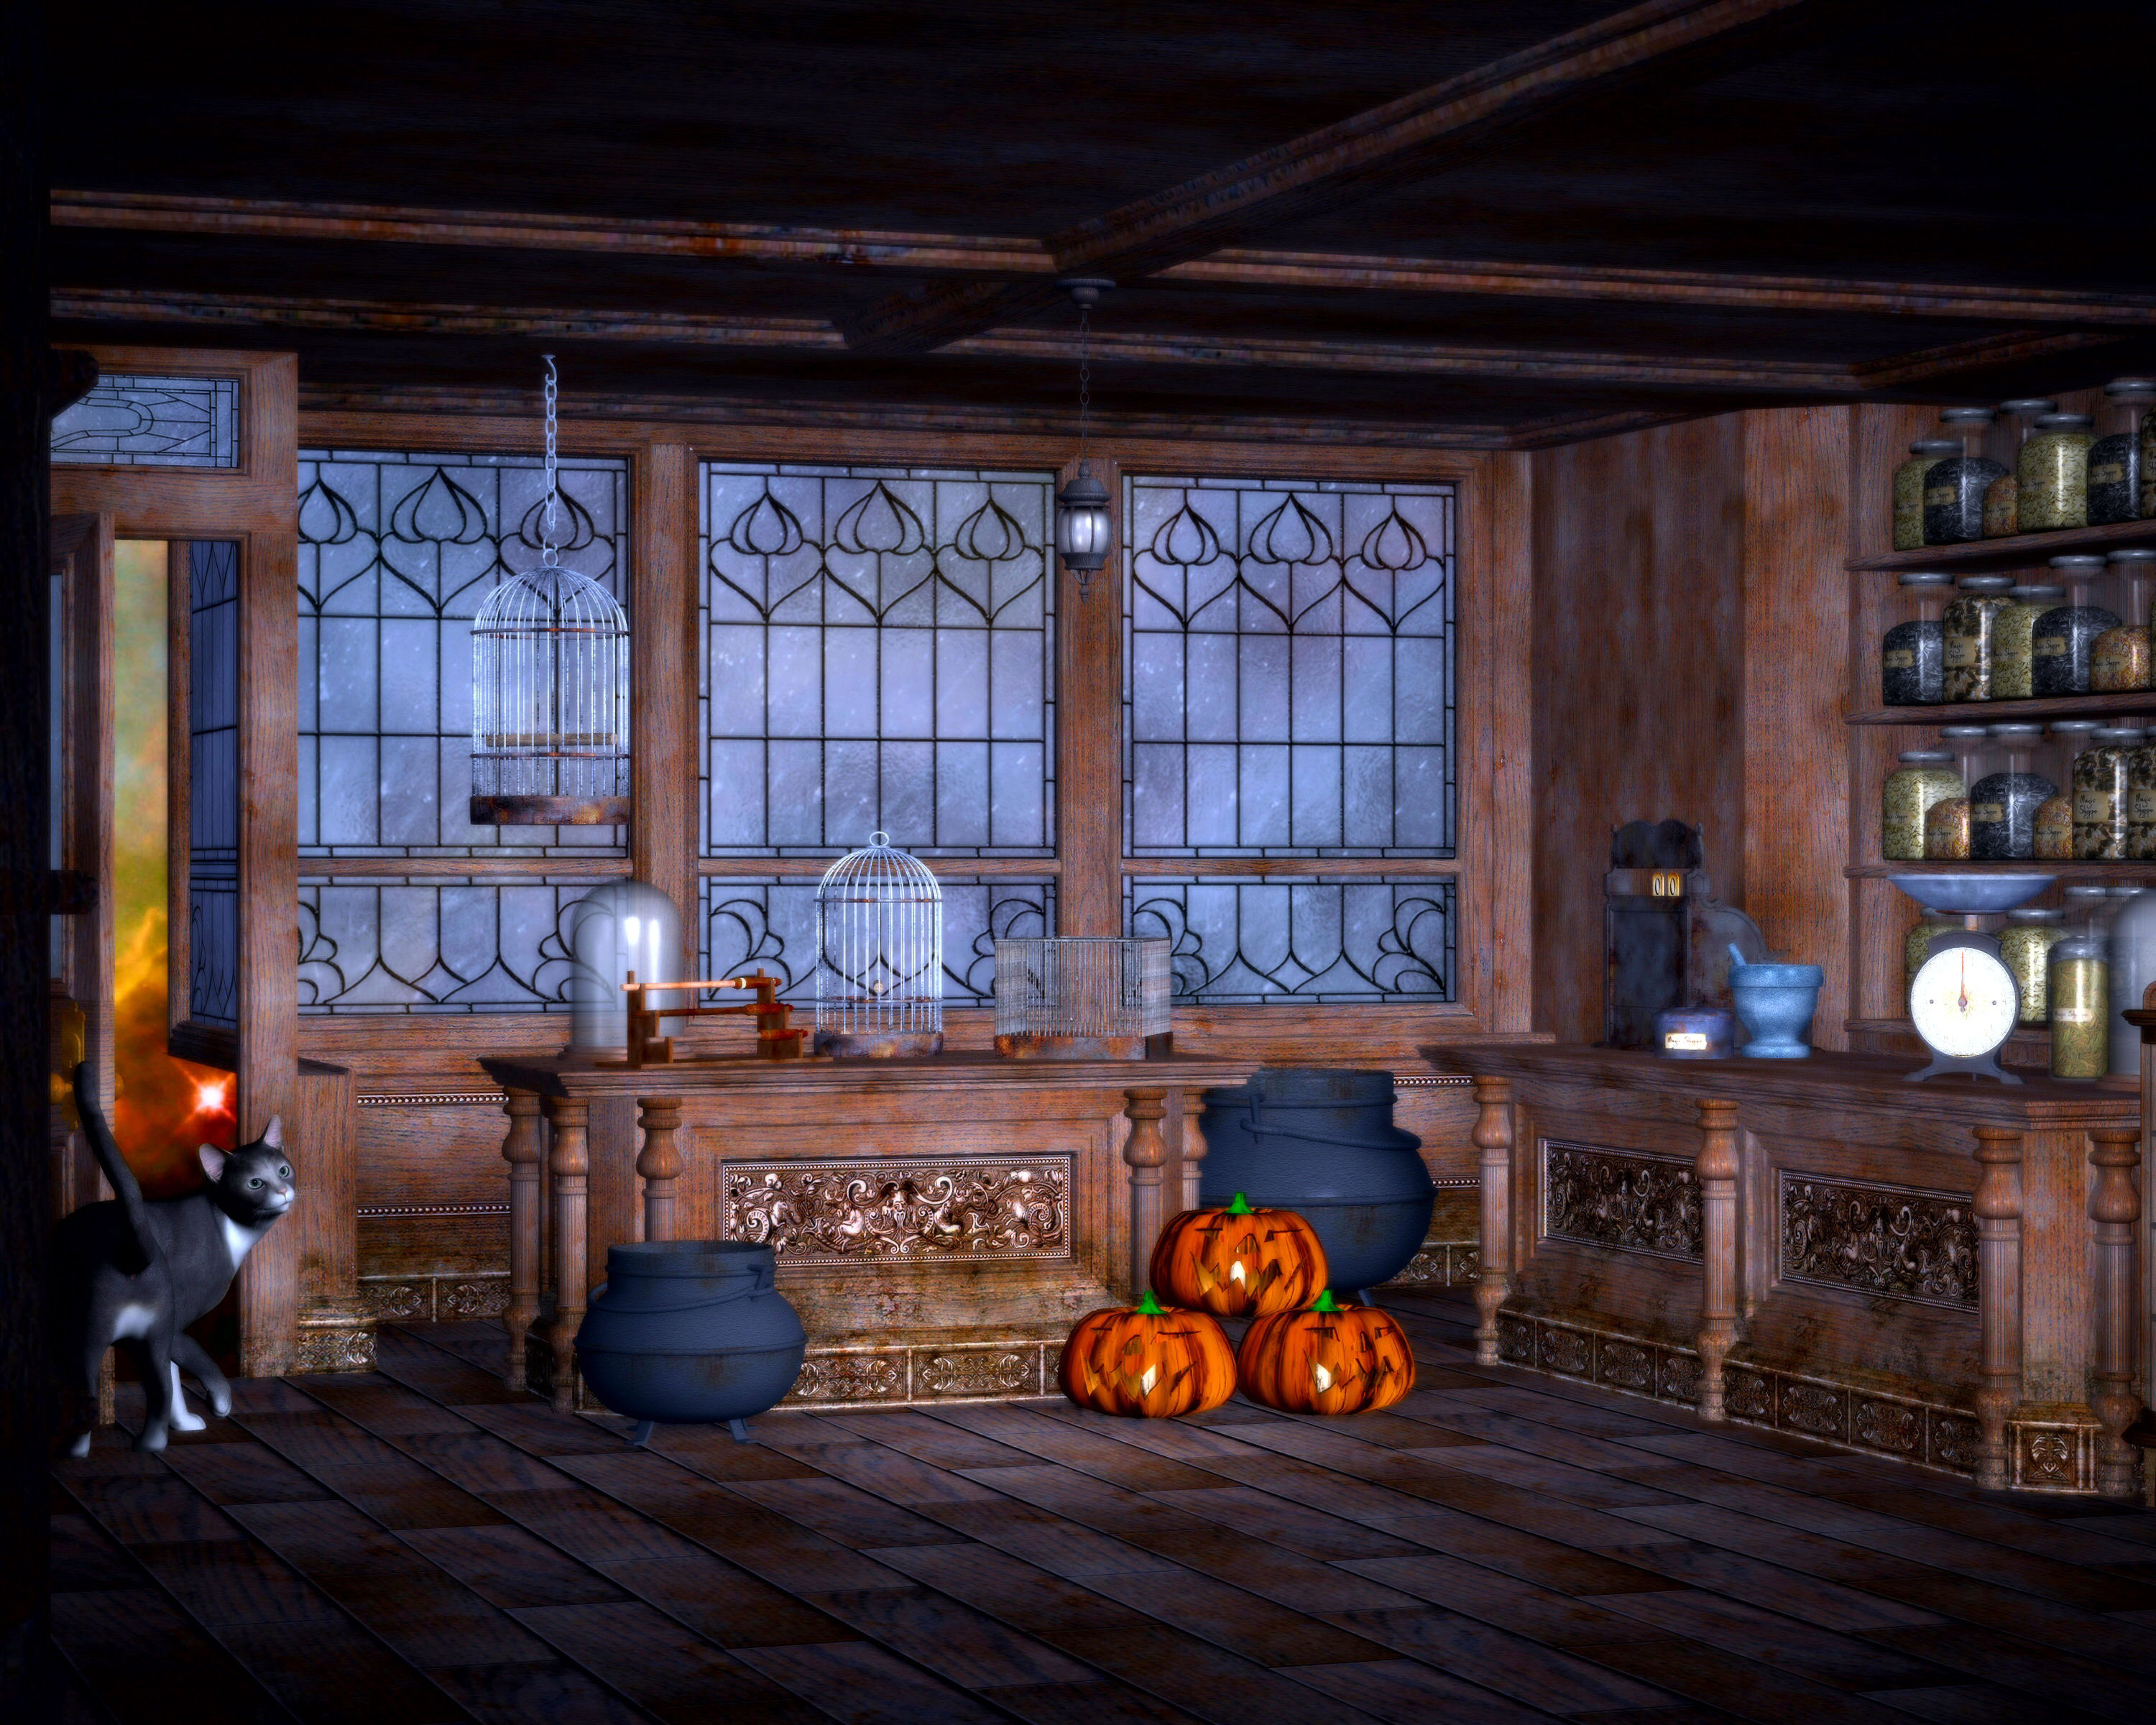 Wizards Room 3d Models With Pumpkins And Other Stuff Image